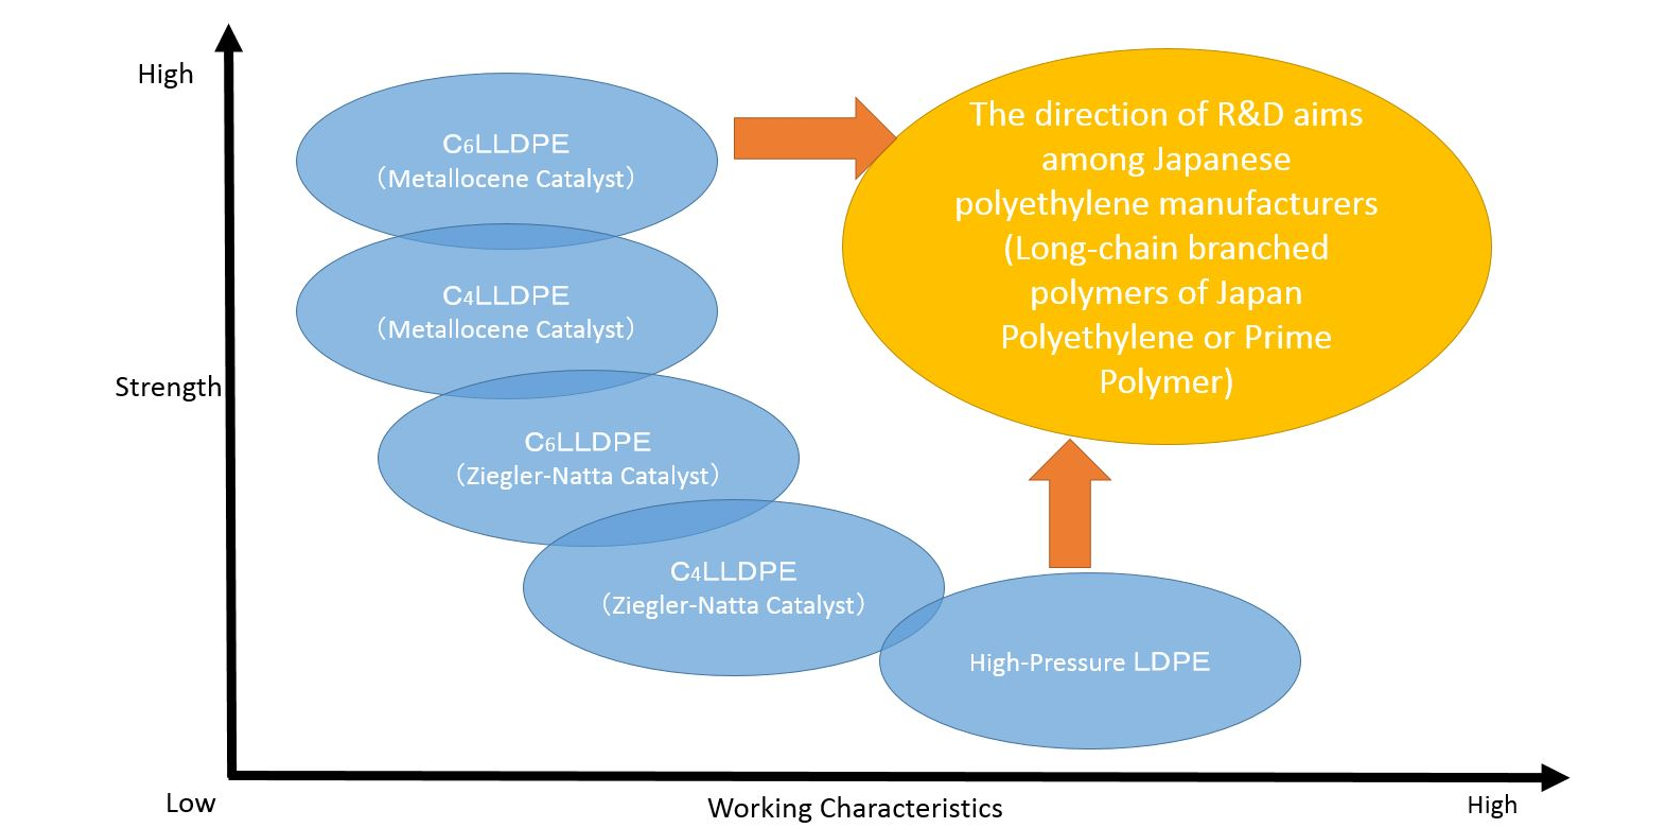 Japan Polyethylene Fights Influx of US PE With Special LLDPE